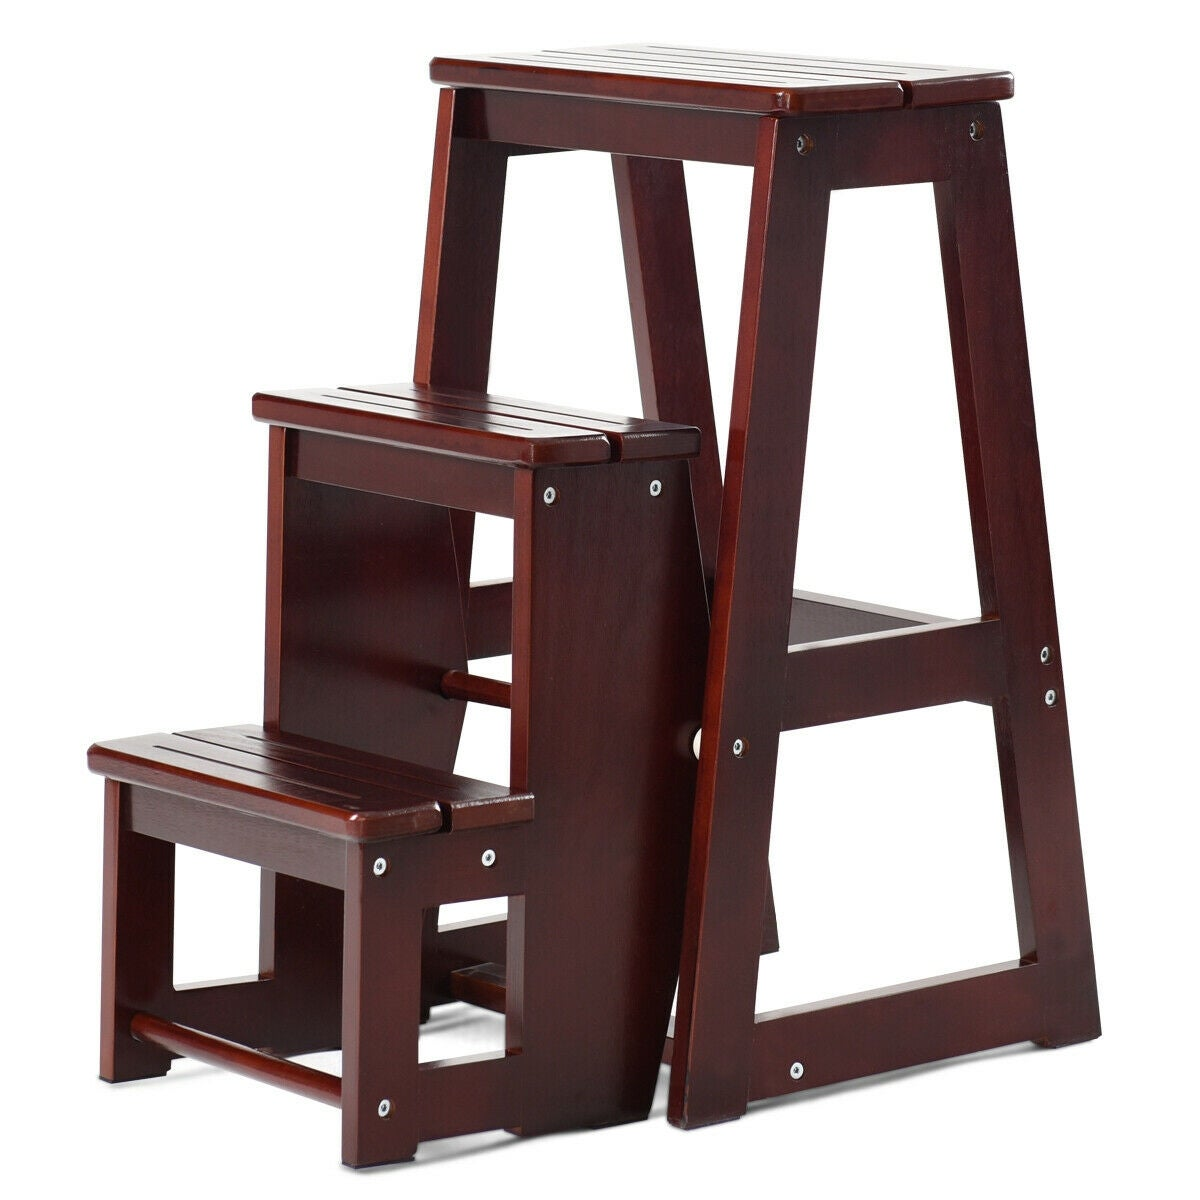 Prime Costway Wood Step Stool Folding 3 Tier Ladder Chair Bench Seat Utility Multi Functional As Pic Andrewgaddart Wooden Chair Designs For Living Room Andrewgaddartcom